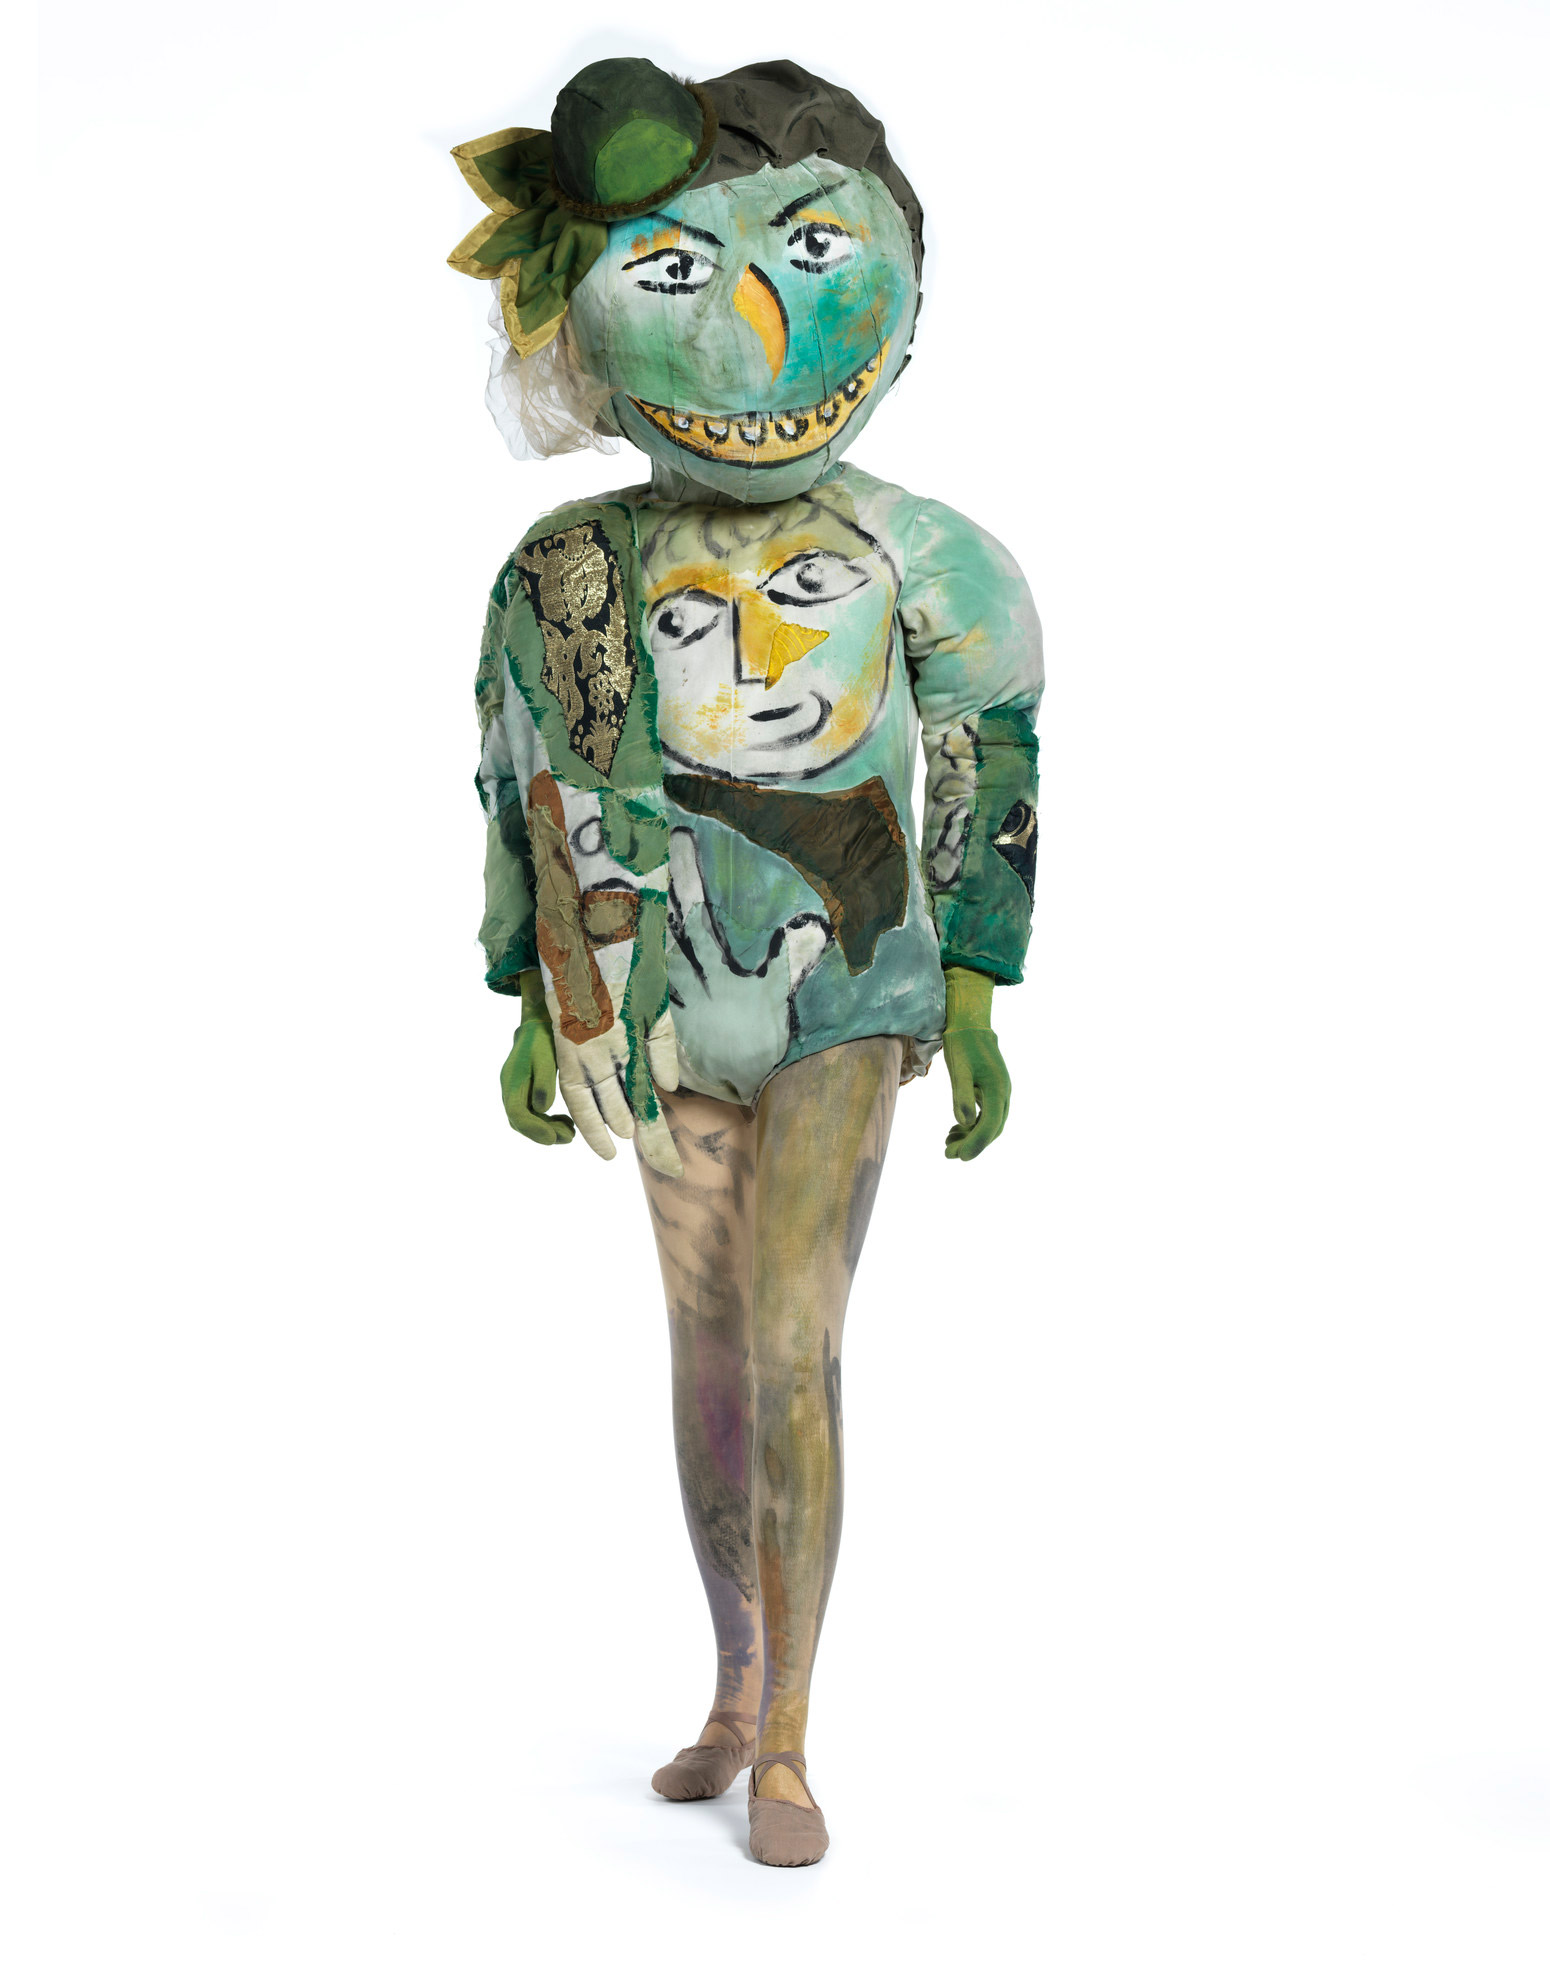 lacma_chagall-fantasies-for-the-stages_the-magic-flute-costumes5_w